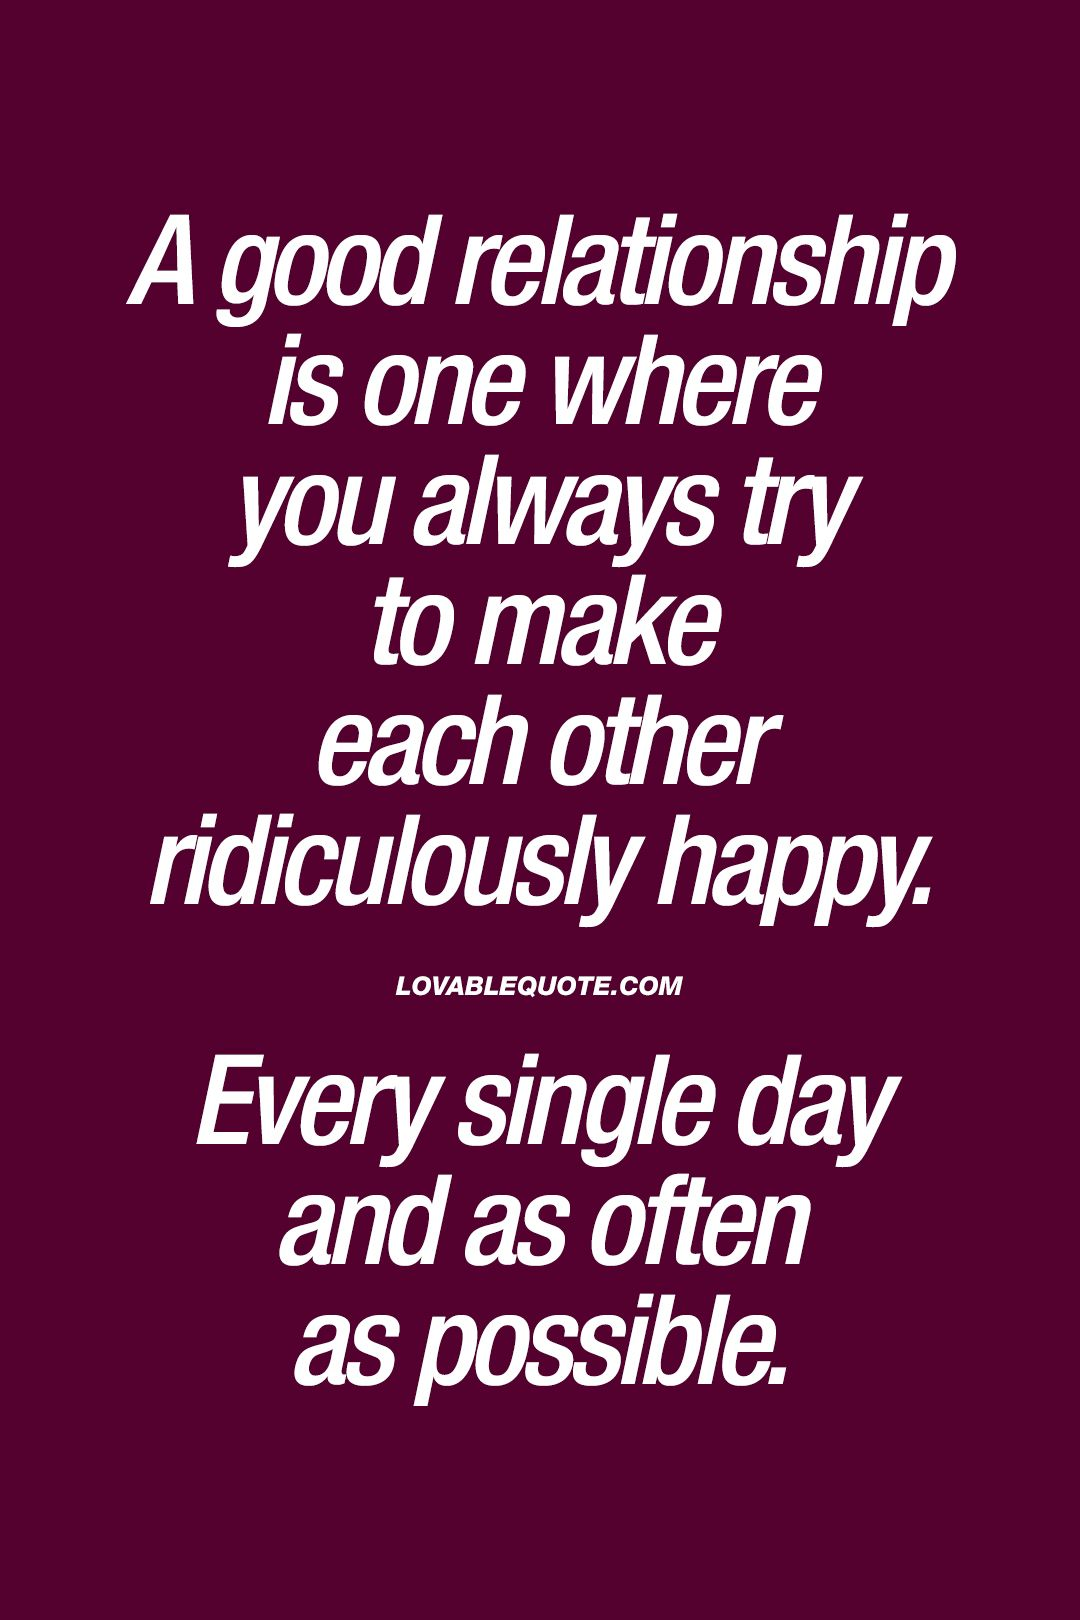 A Good Relationship Is One Where You Always Try To Make Each Other